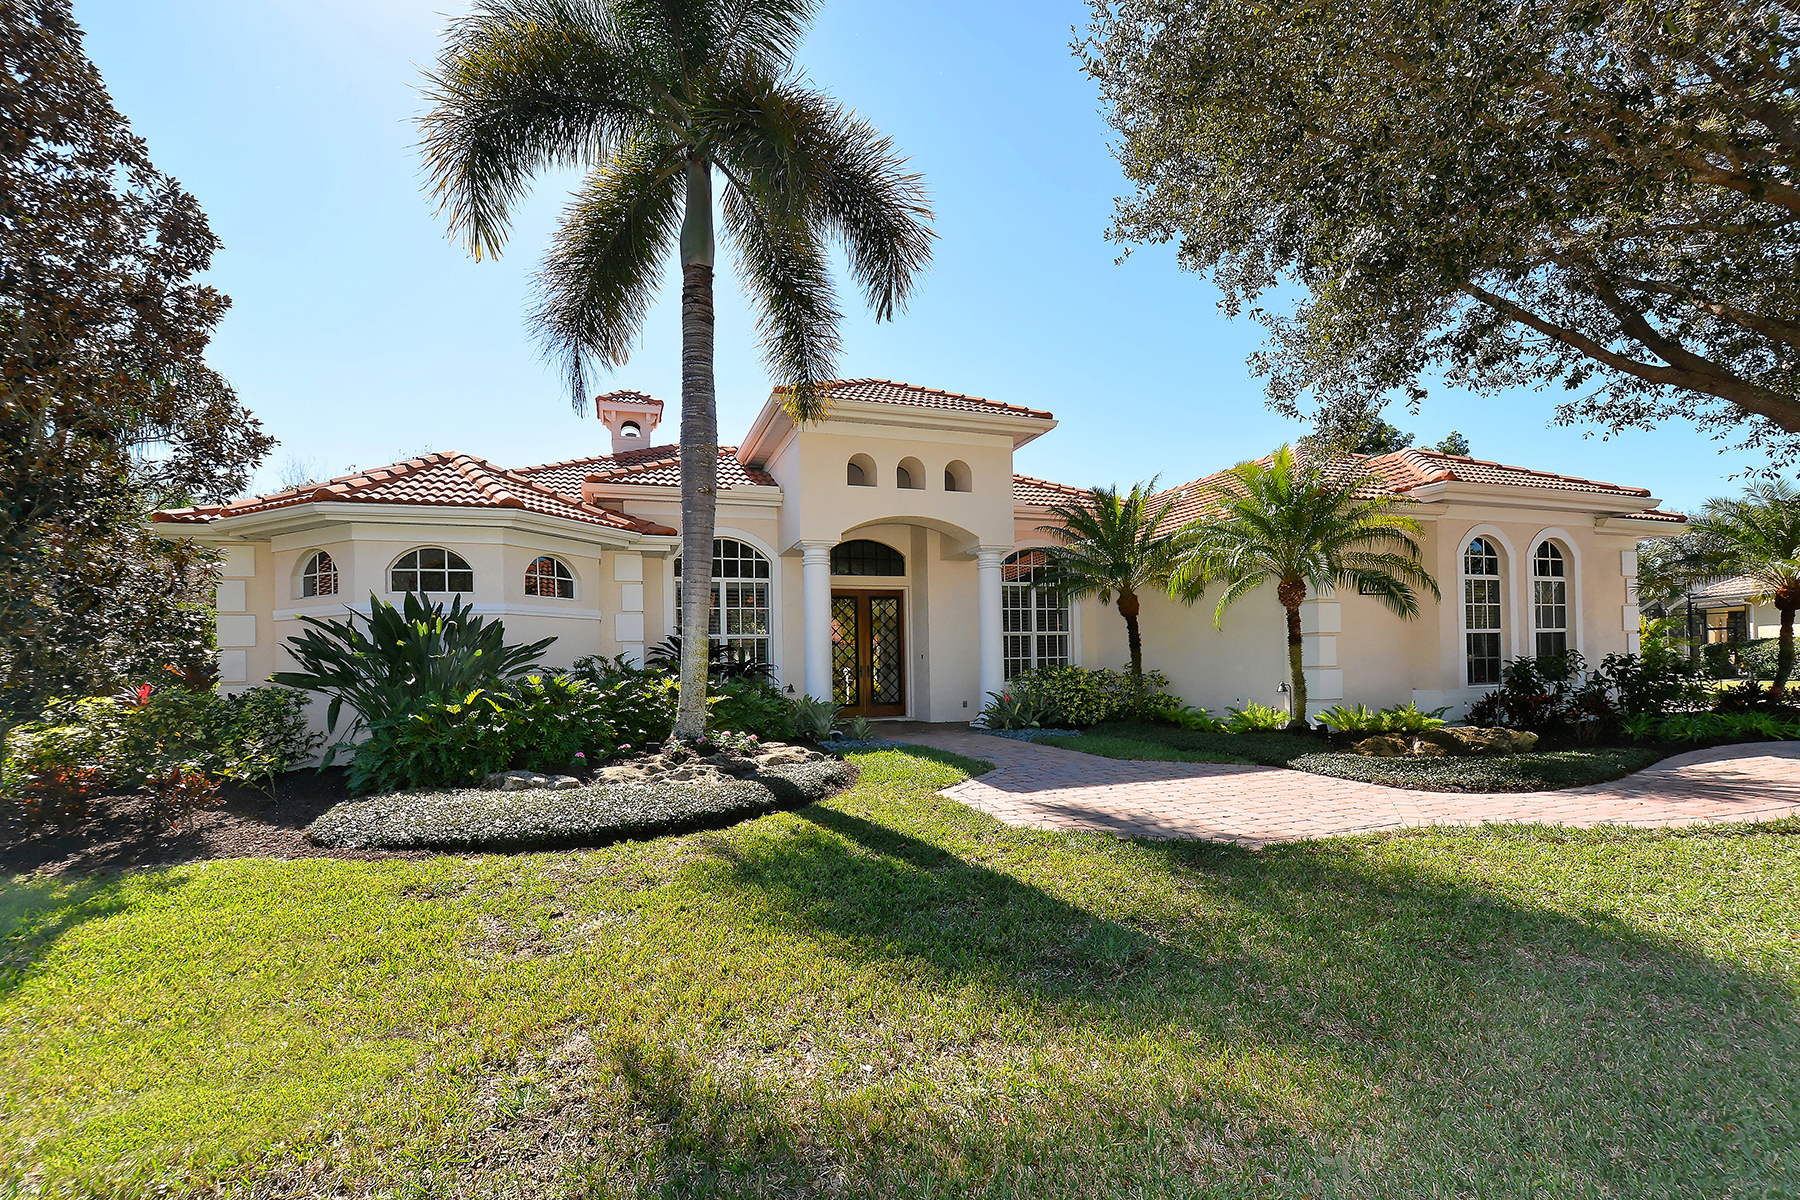 Single Family Home for Sale at CANTERBURY AT LAKEWOOD RANCH COUNTRY CLUB 7028 Beechmont Terr Lakewood Ranch, Florida, 34202 United States